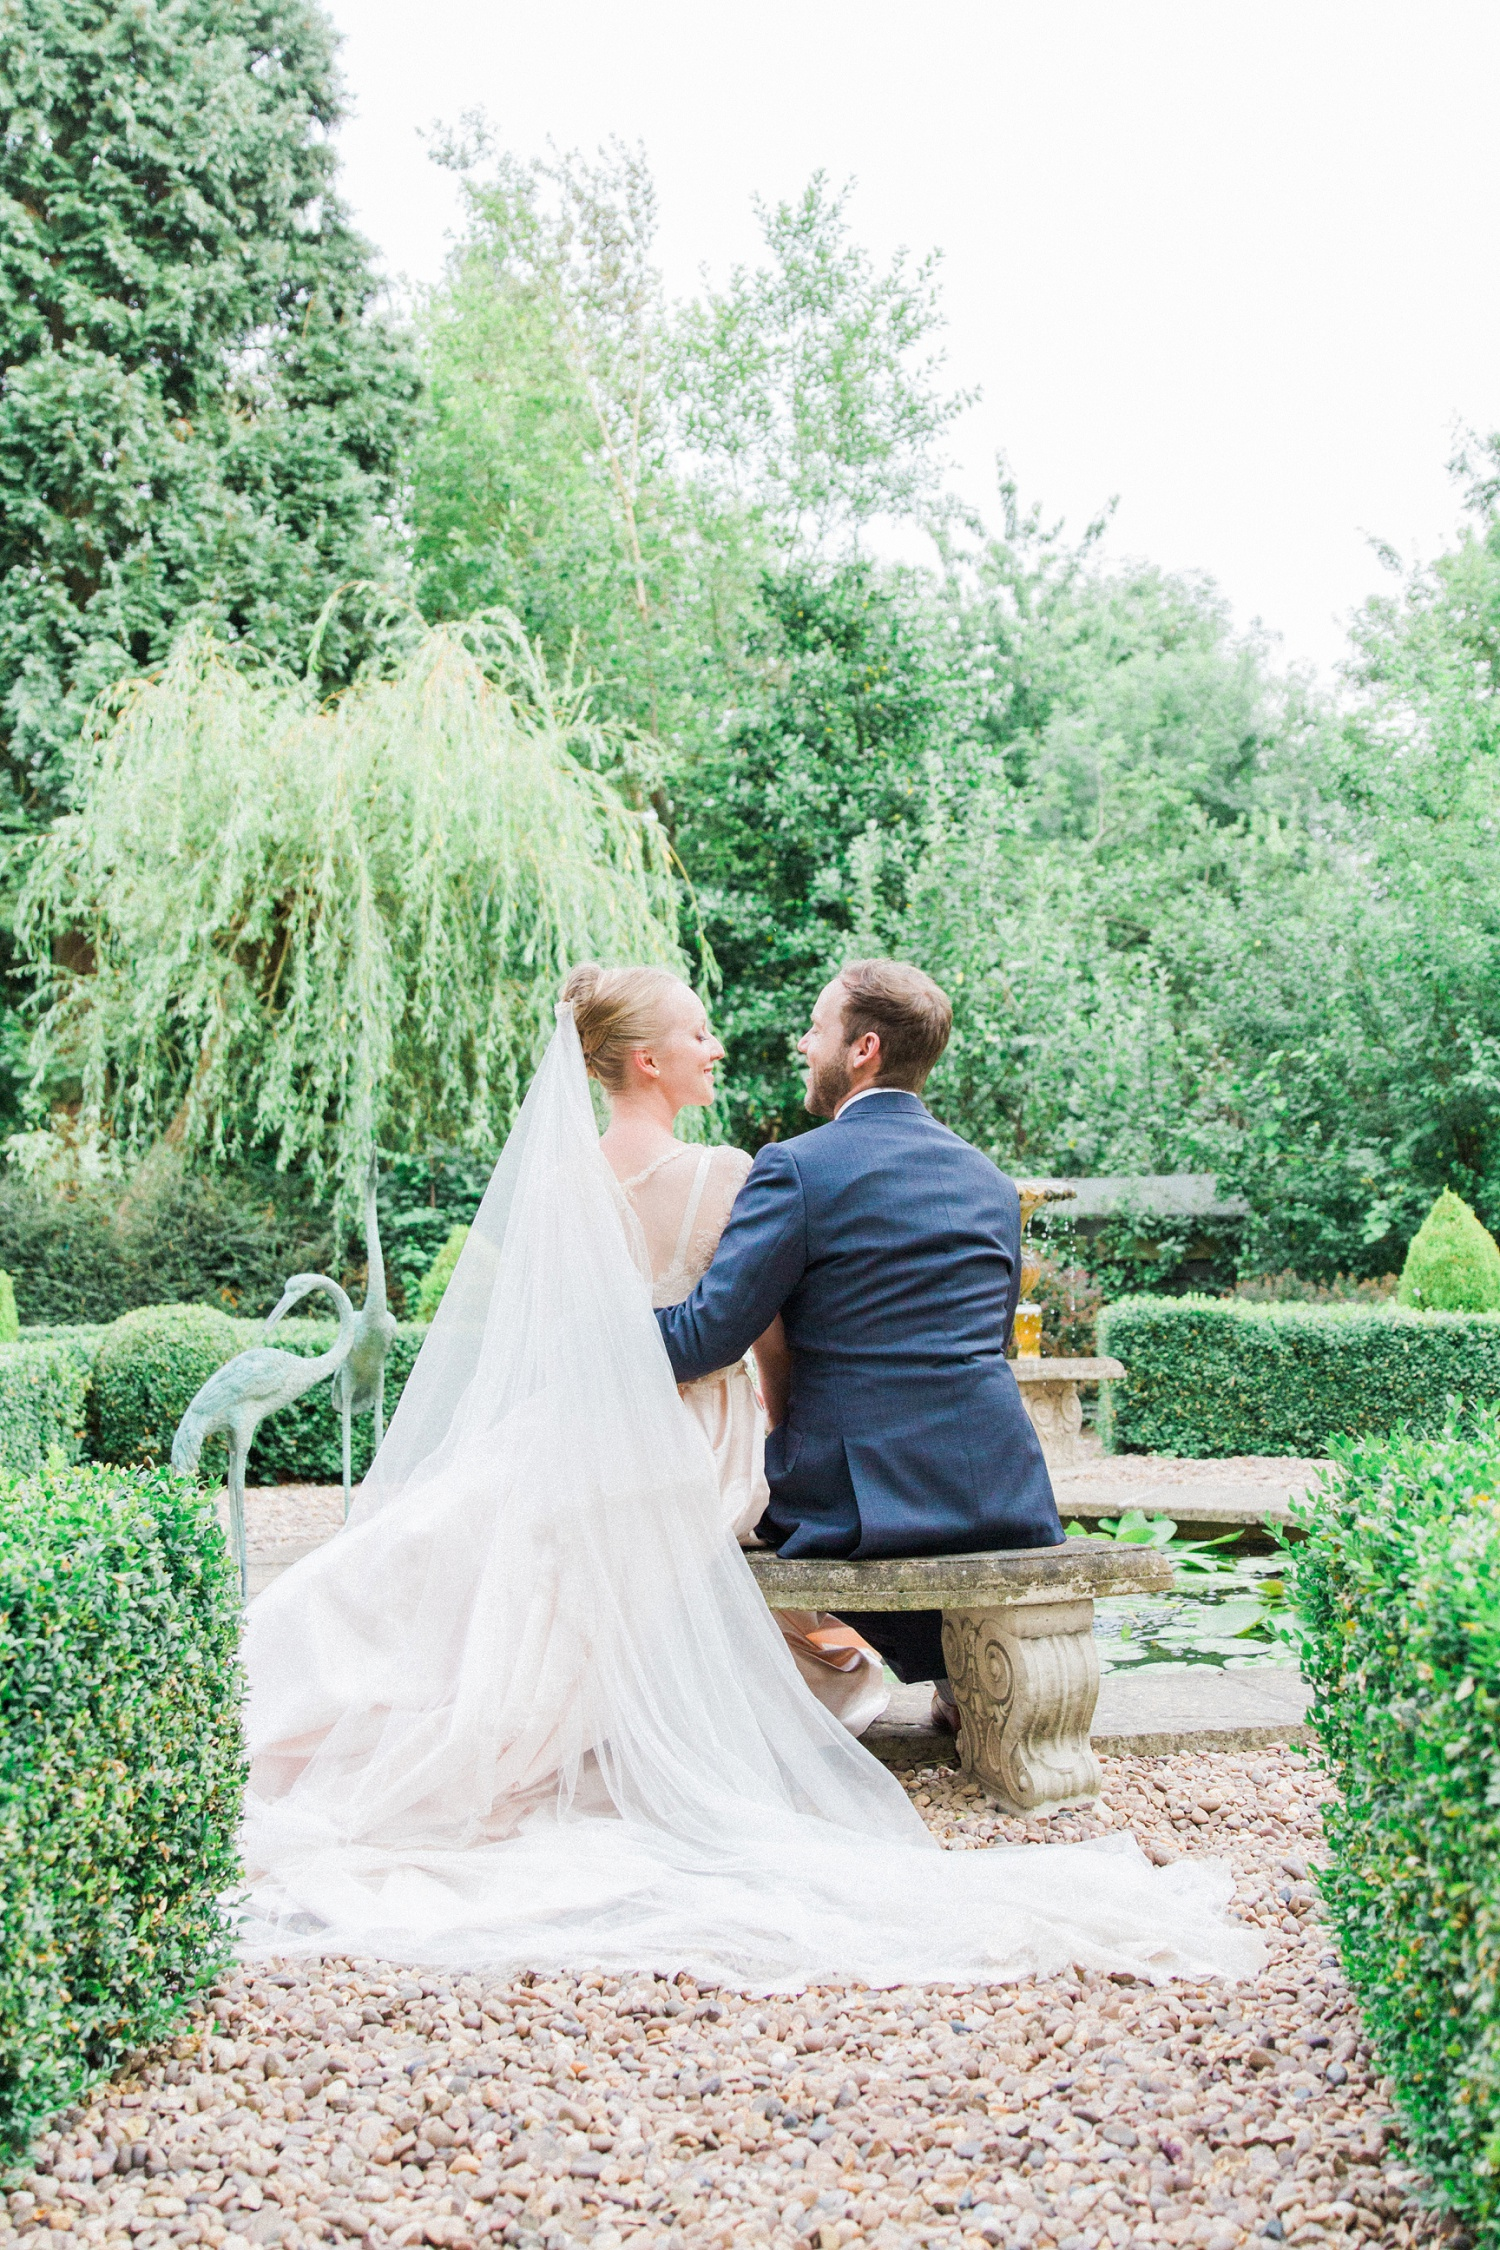 Bride and groom sit on a bench together during their English garden wedding